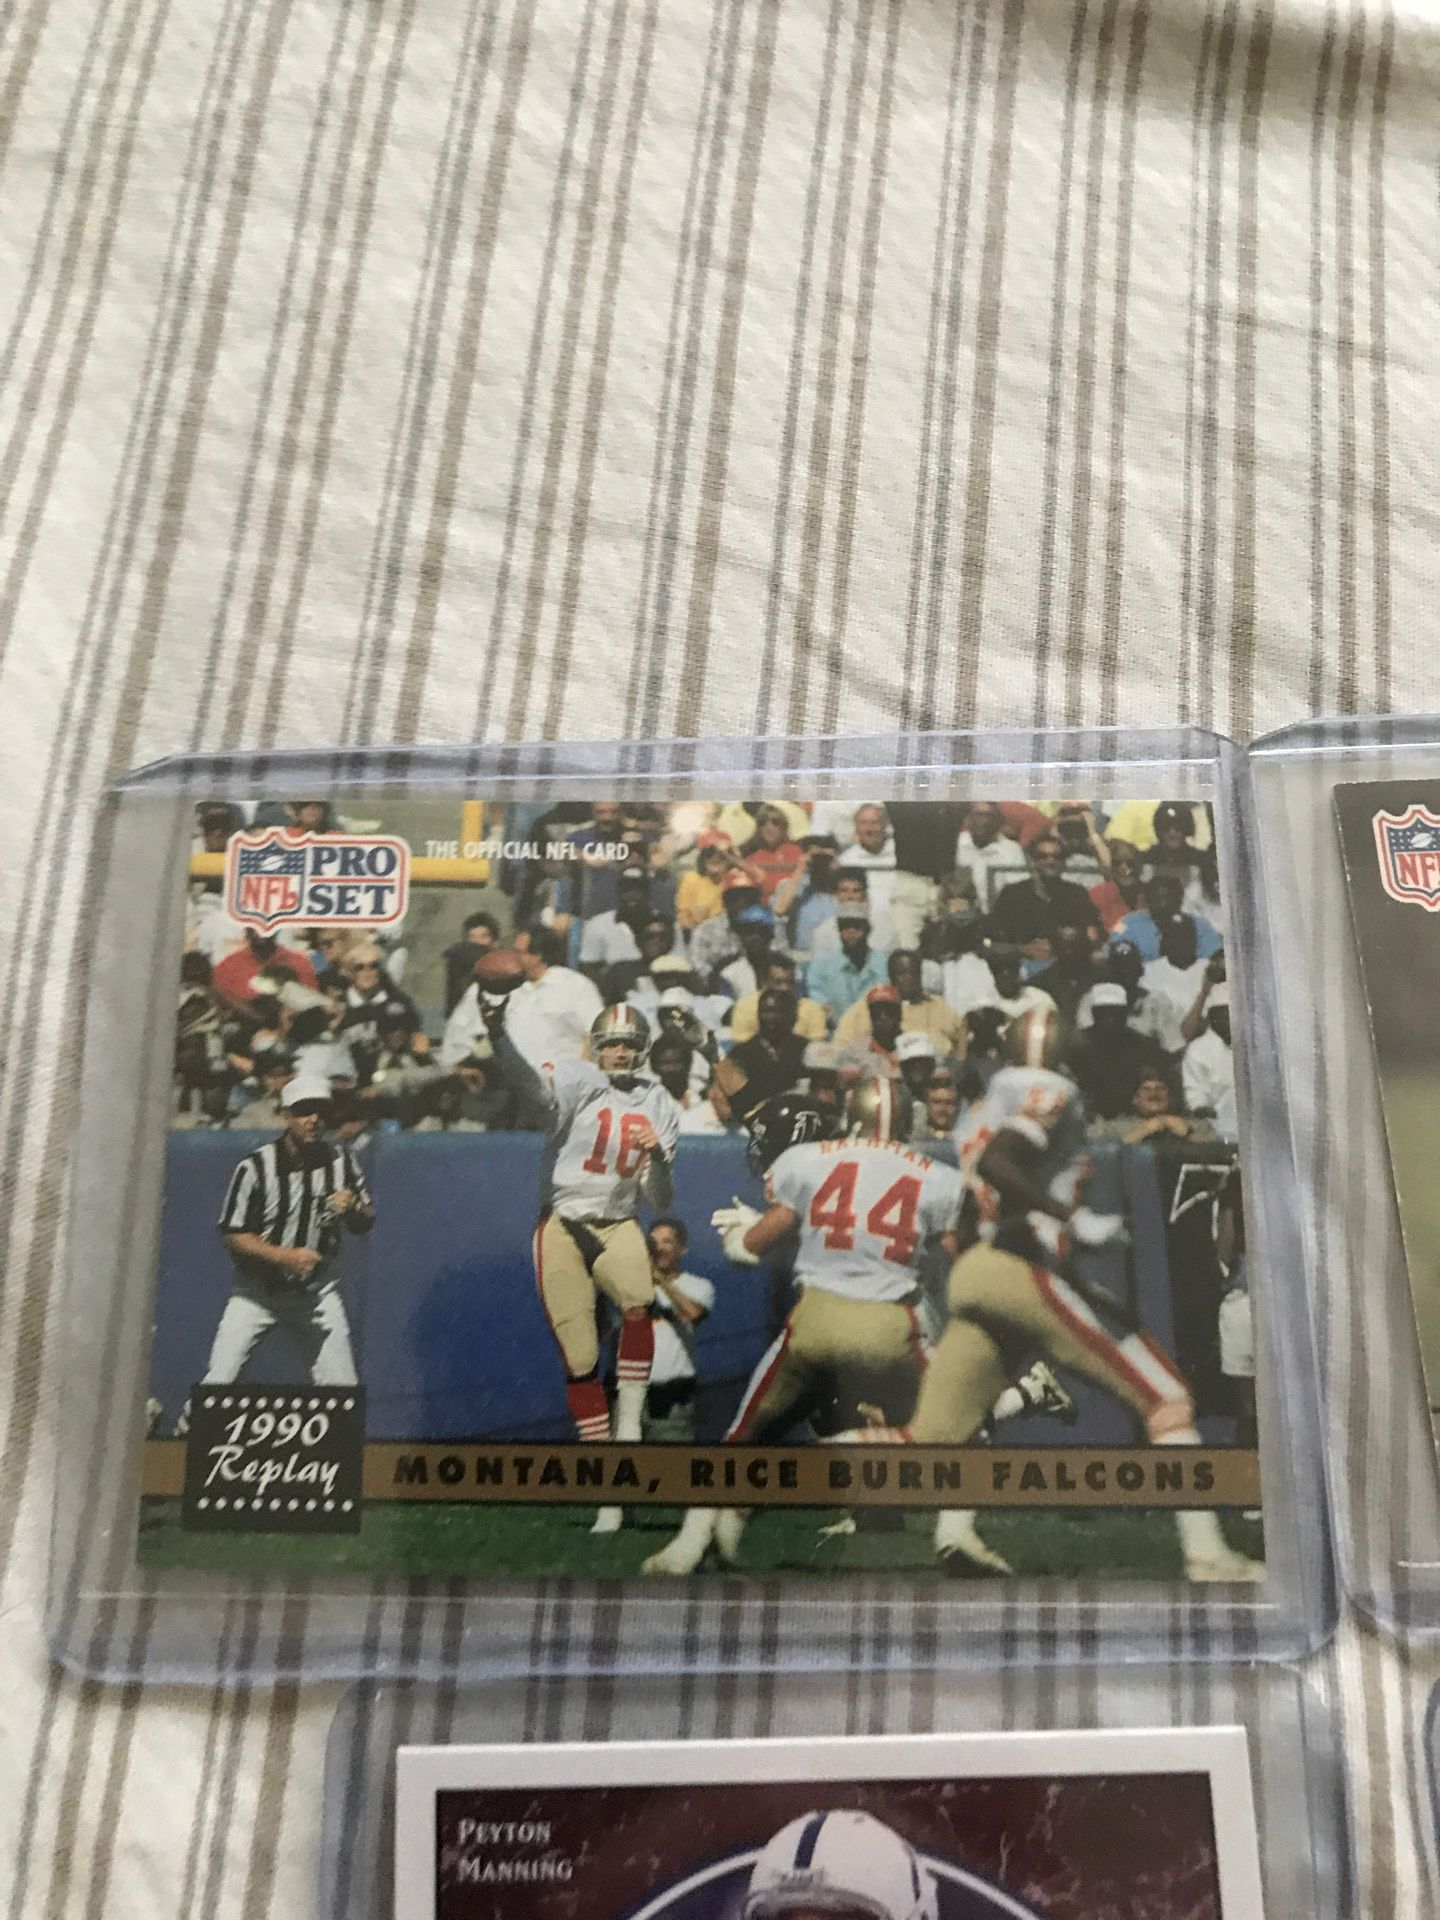 Lot of 4 NFL Star player cards